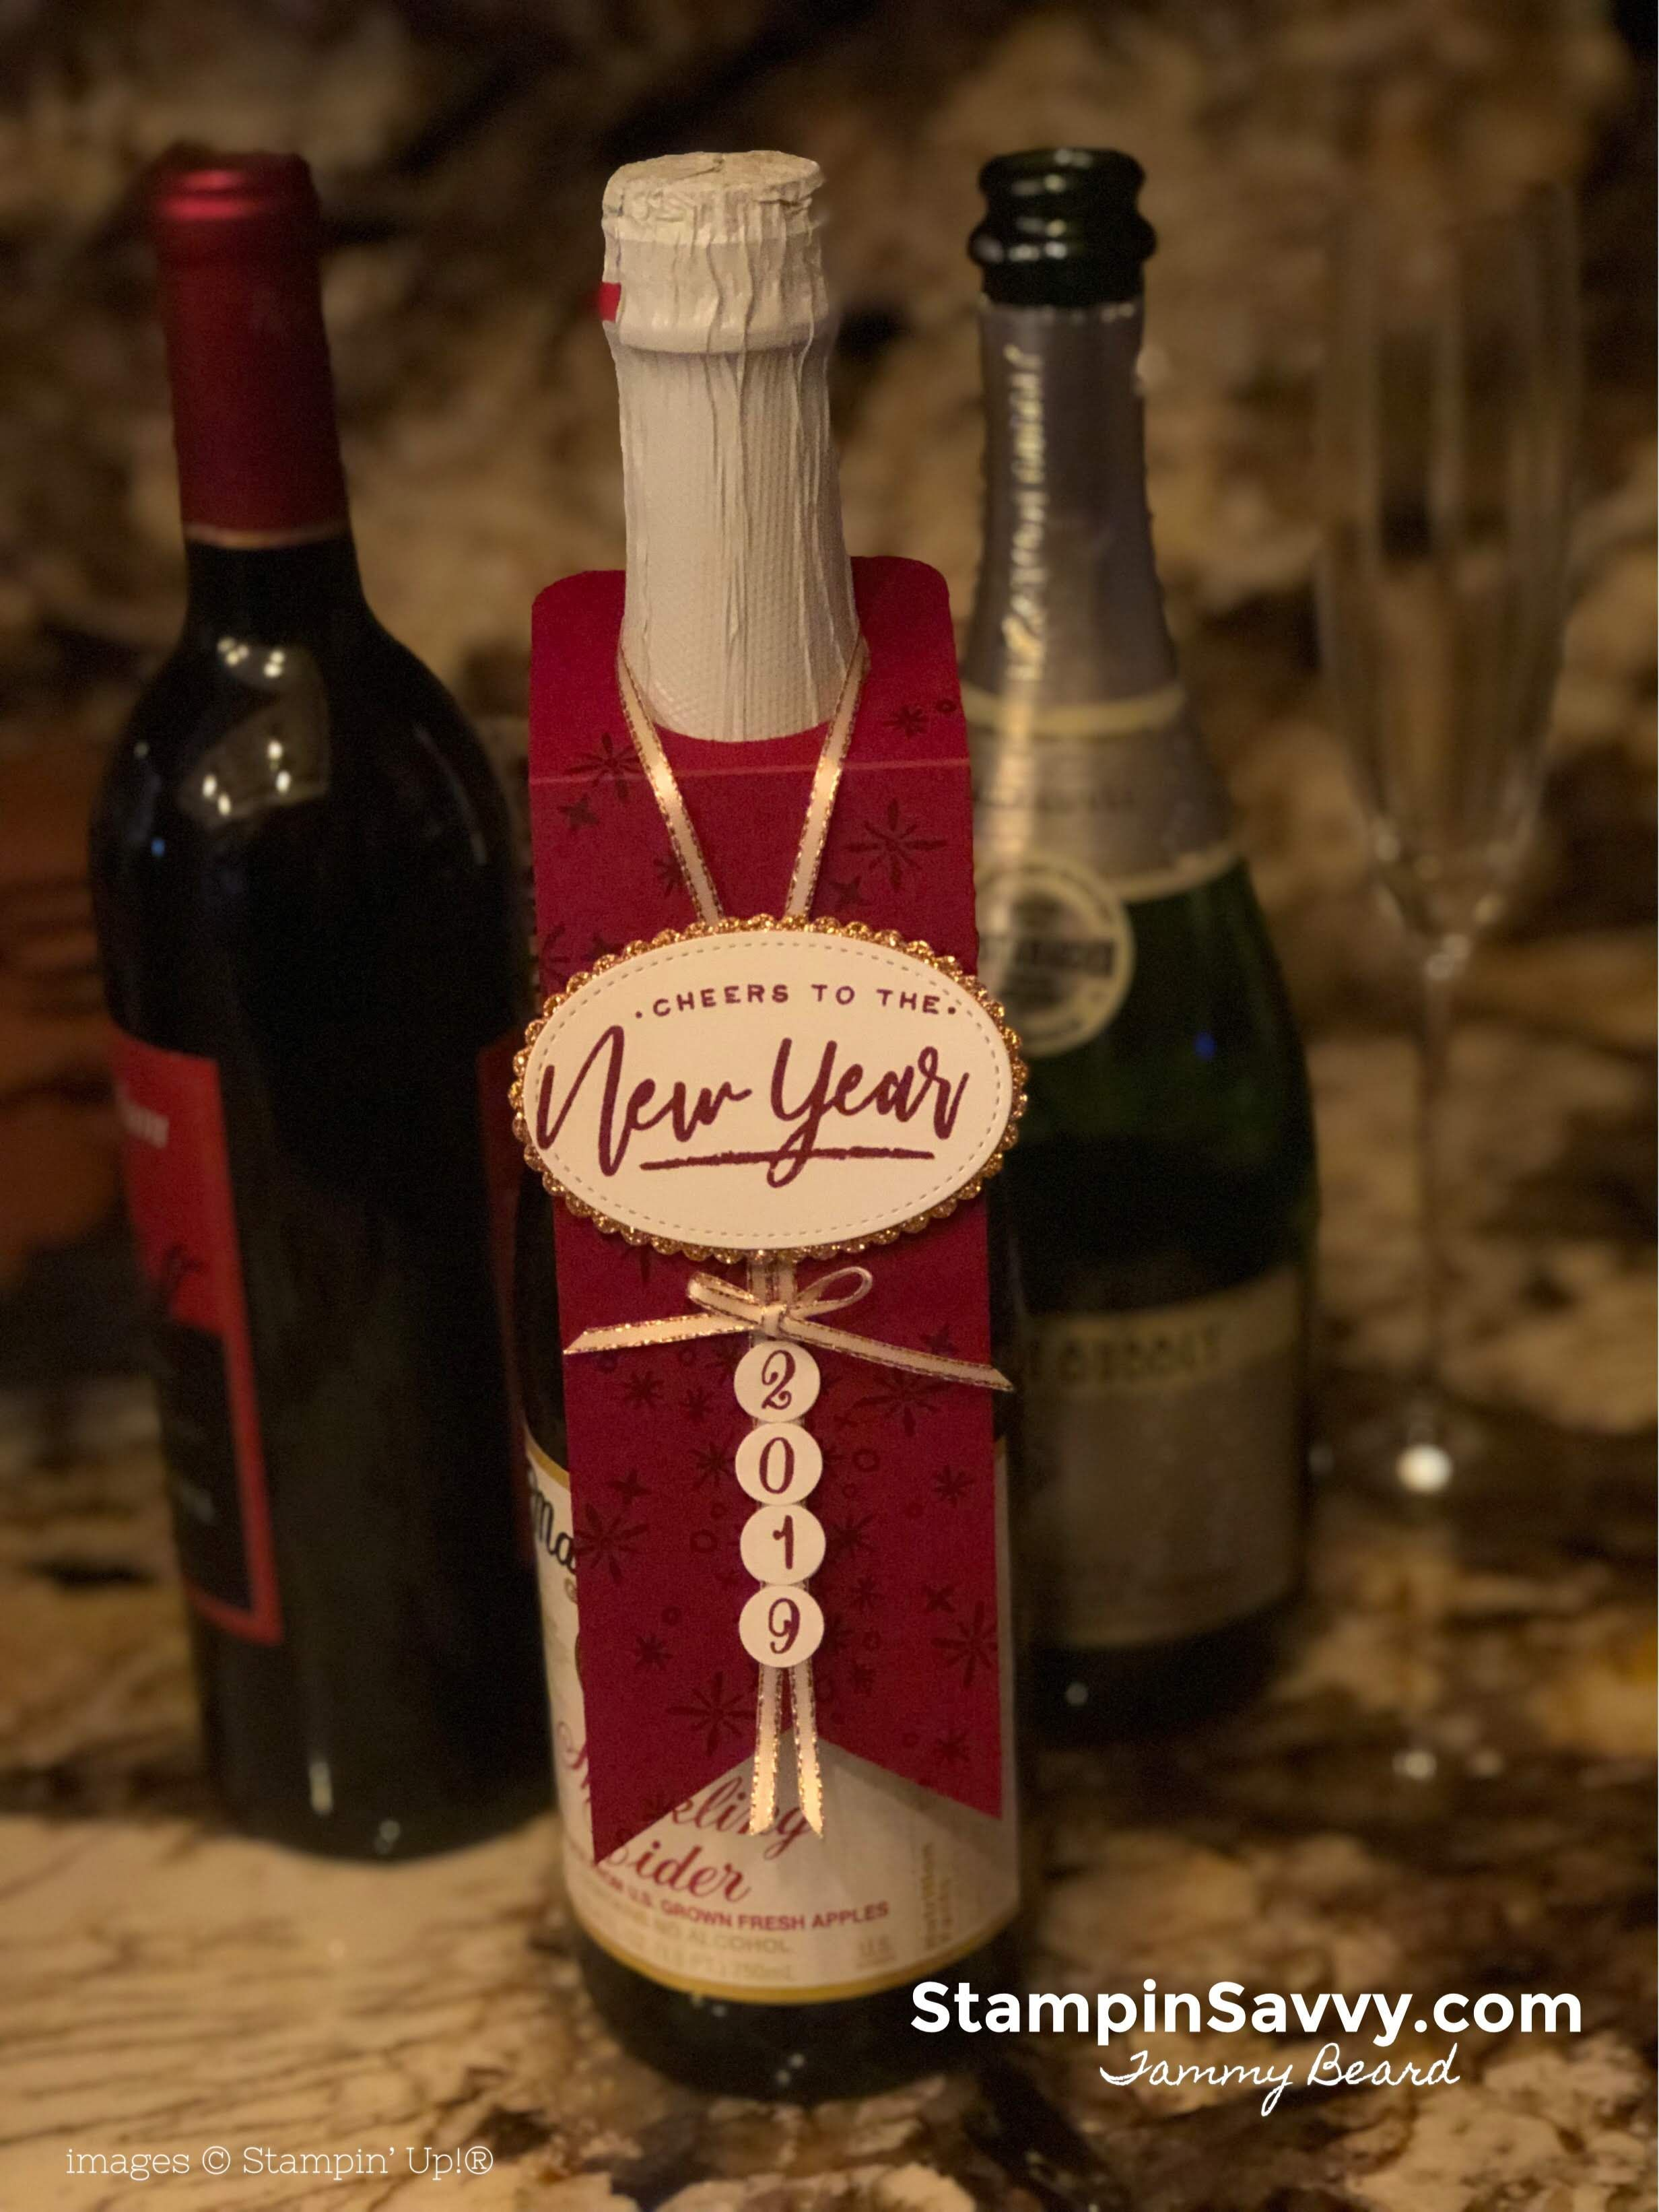 Wine Bottle Tag New Years Host Gift Stampin Savvy Wine Bottle Tags Wine Bottle Bottle Gift Tags